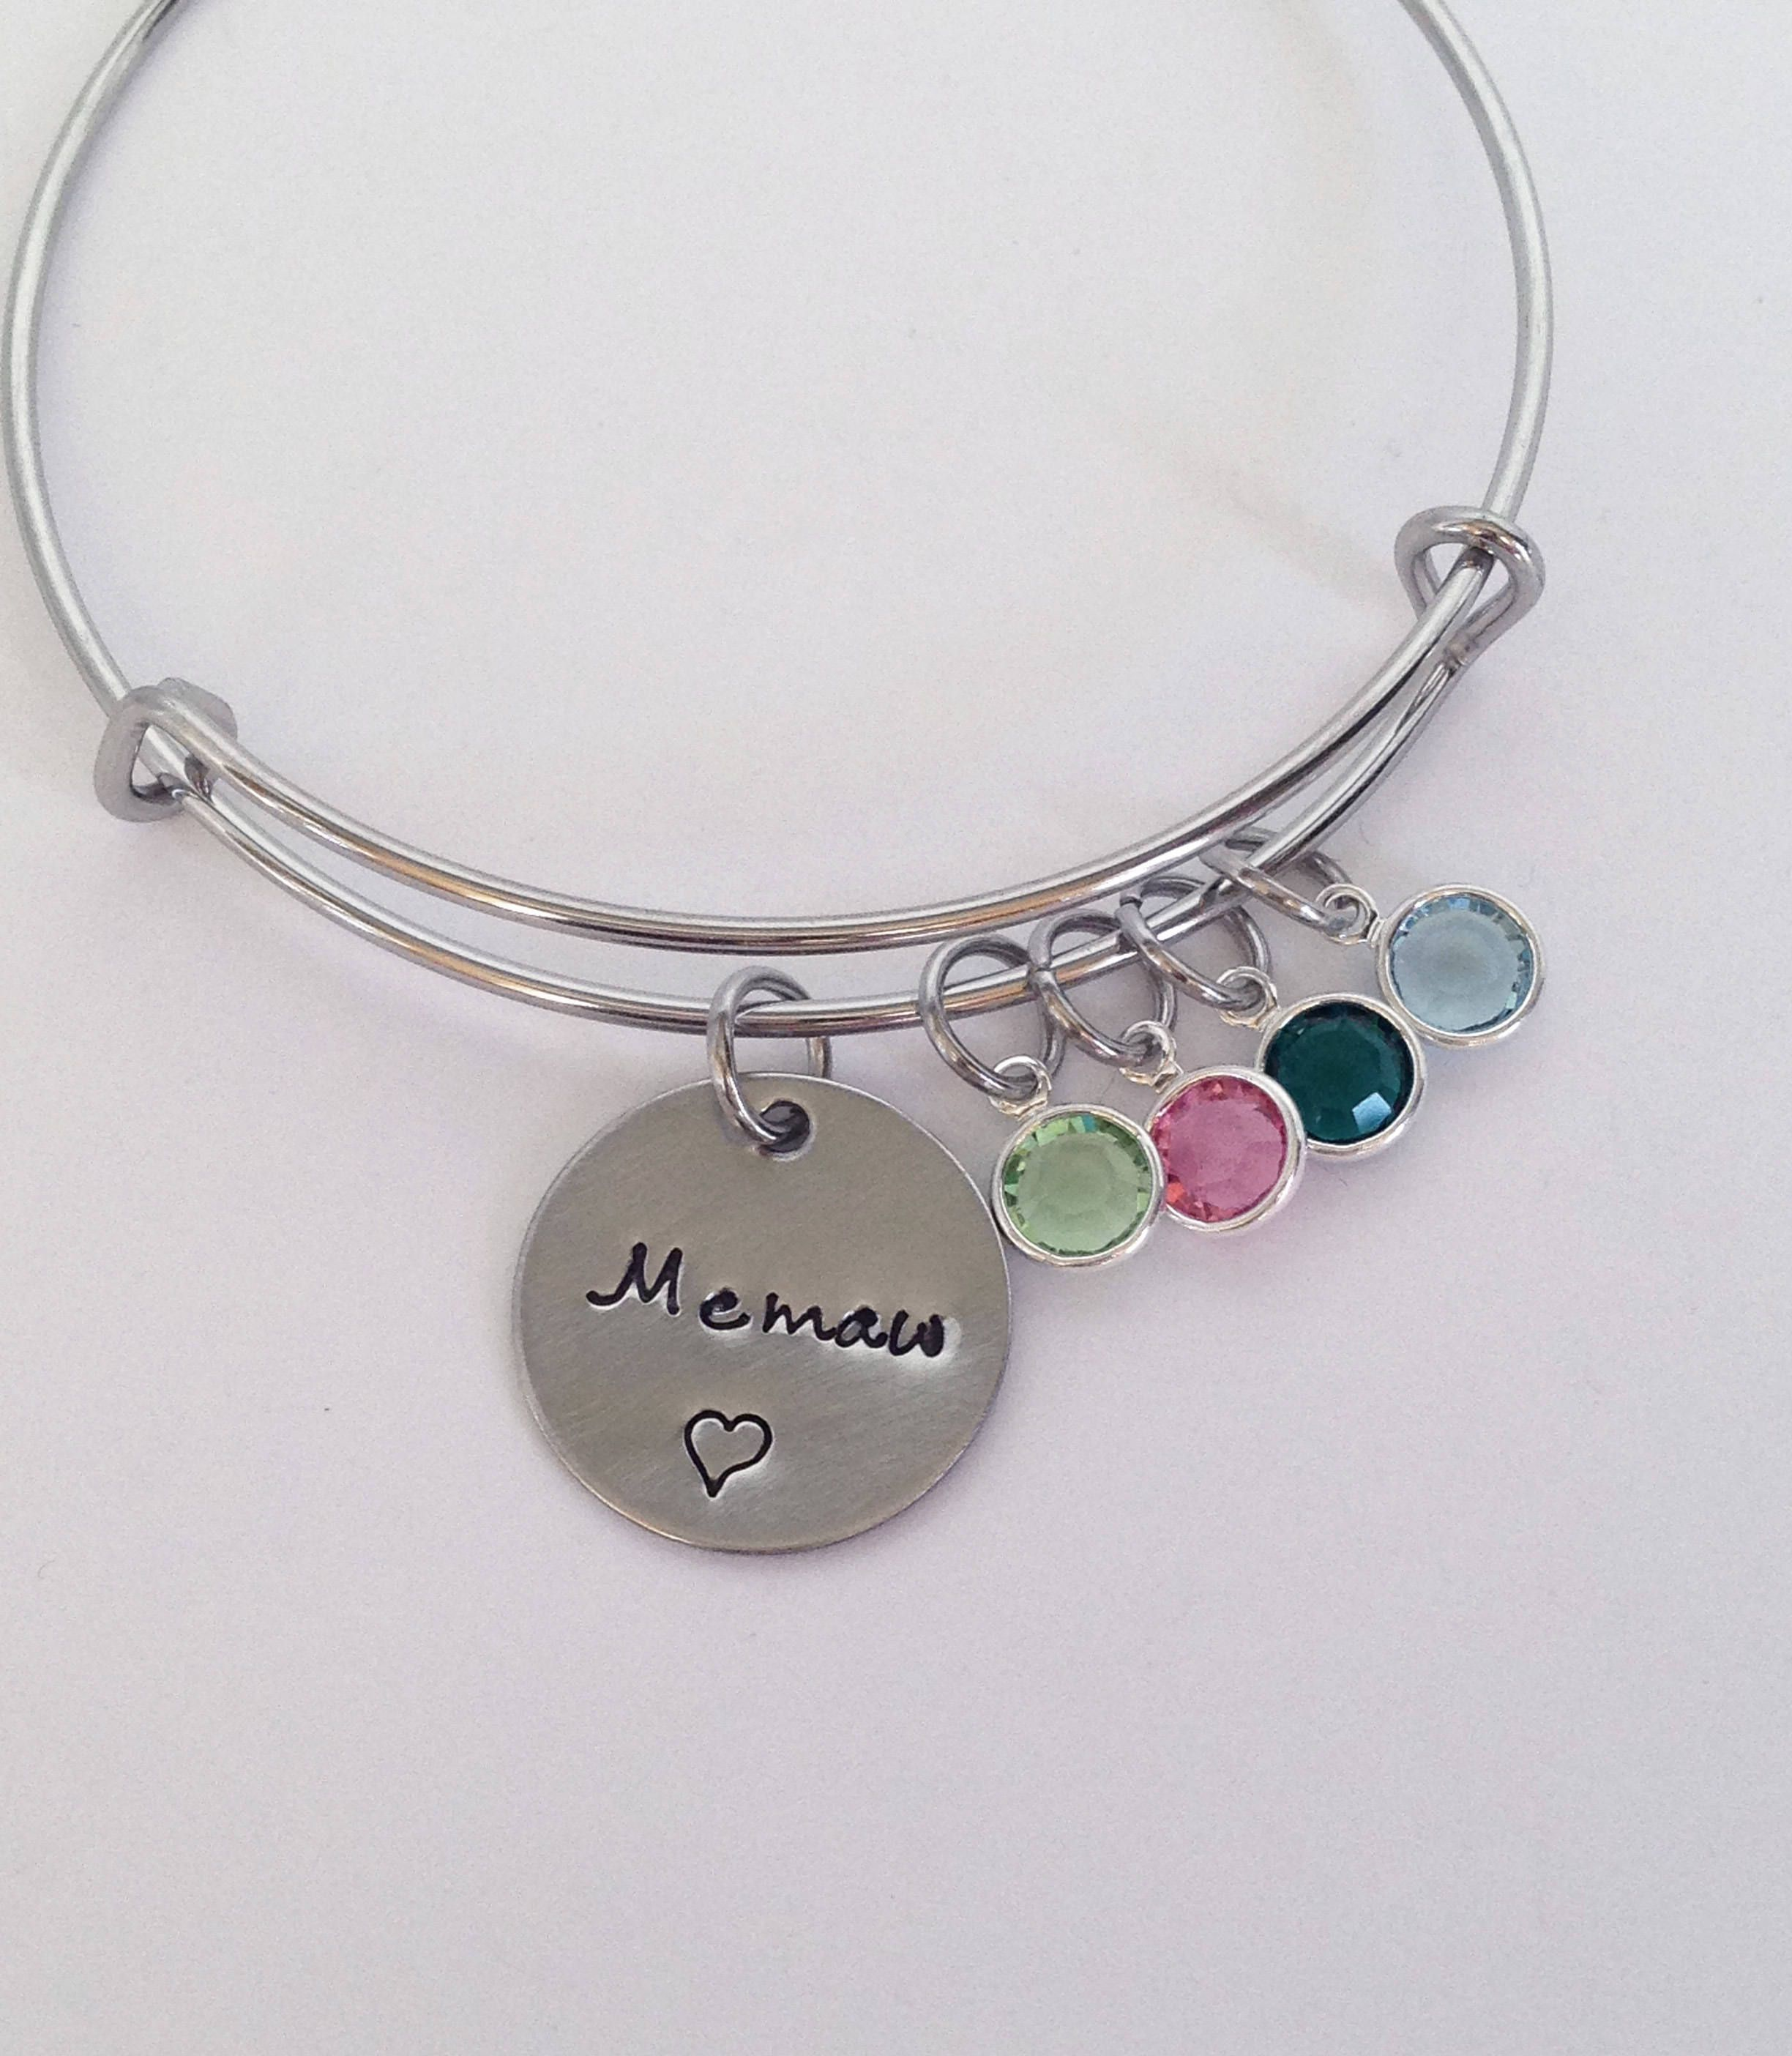 """/""""Memaw/"""" Pink Heart Charm Necklace Grandmother Grandma Mothers Day Christmas Gift"""